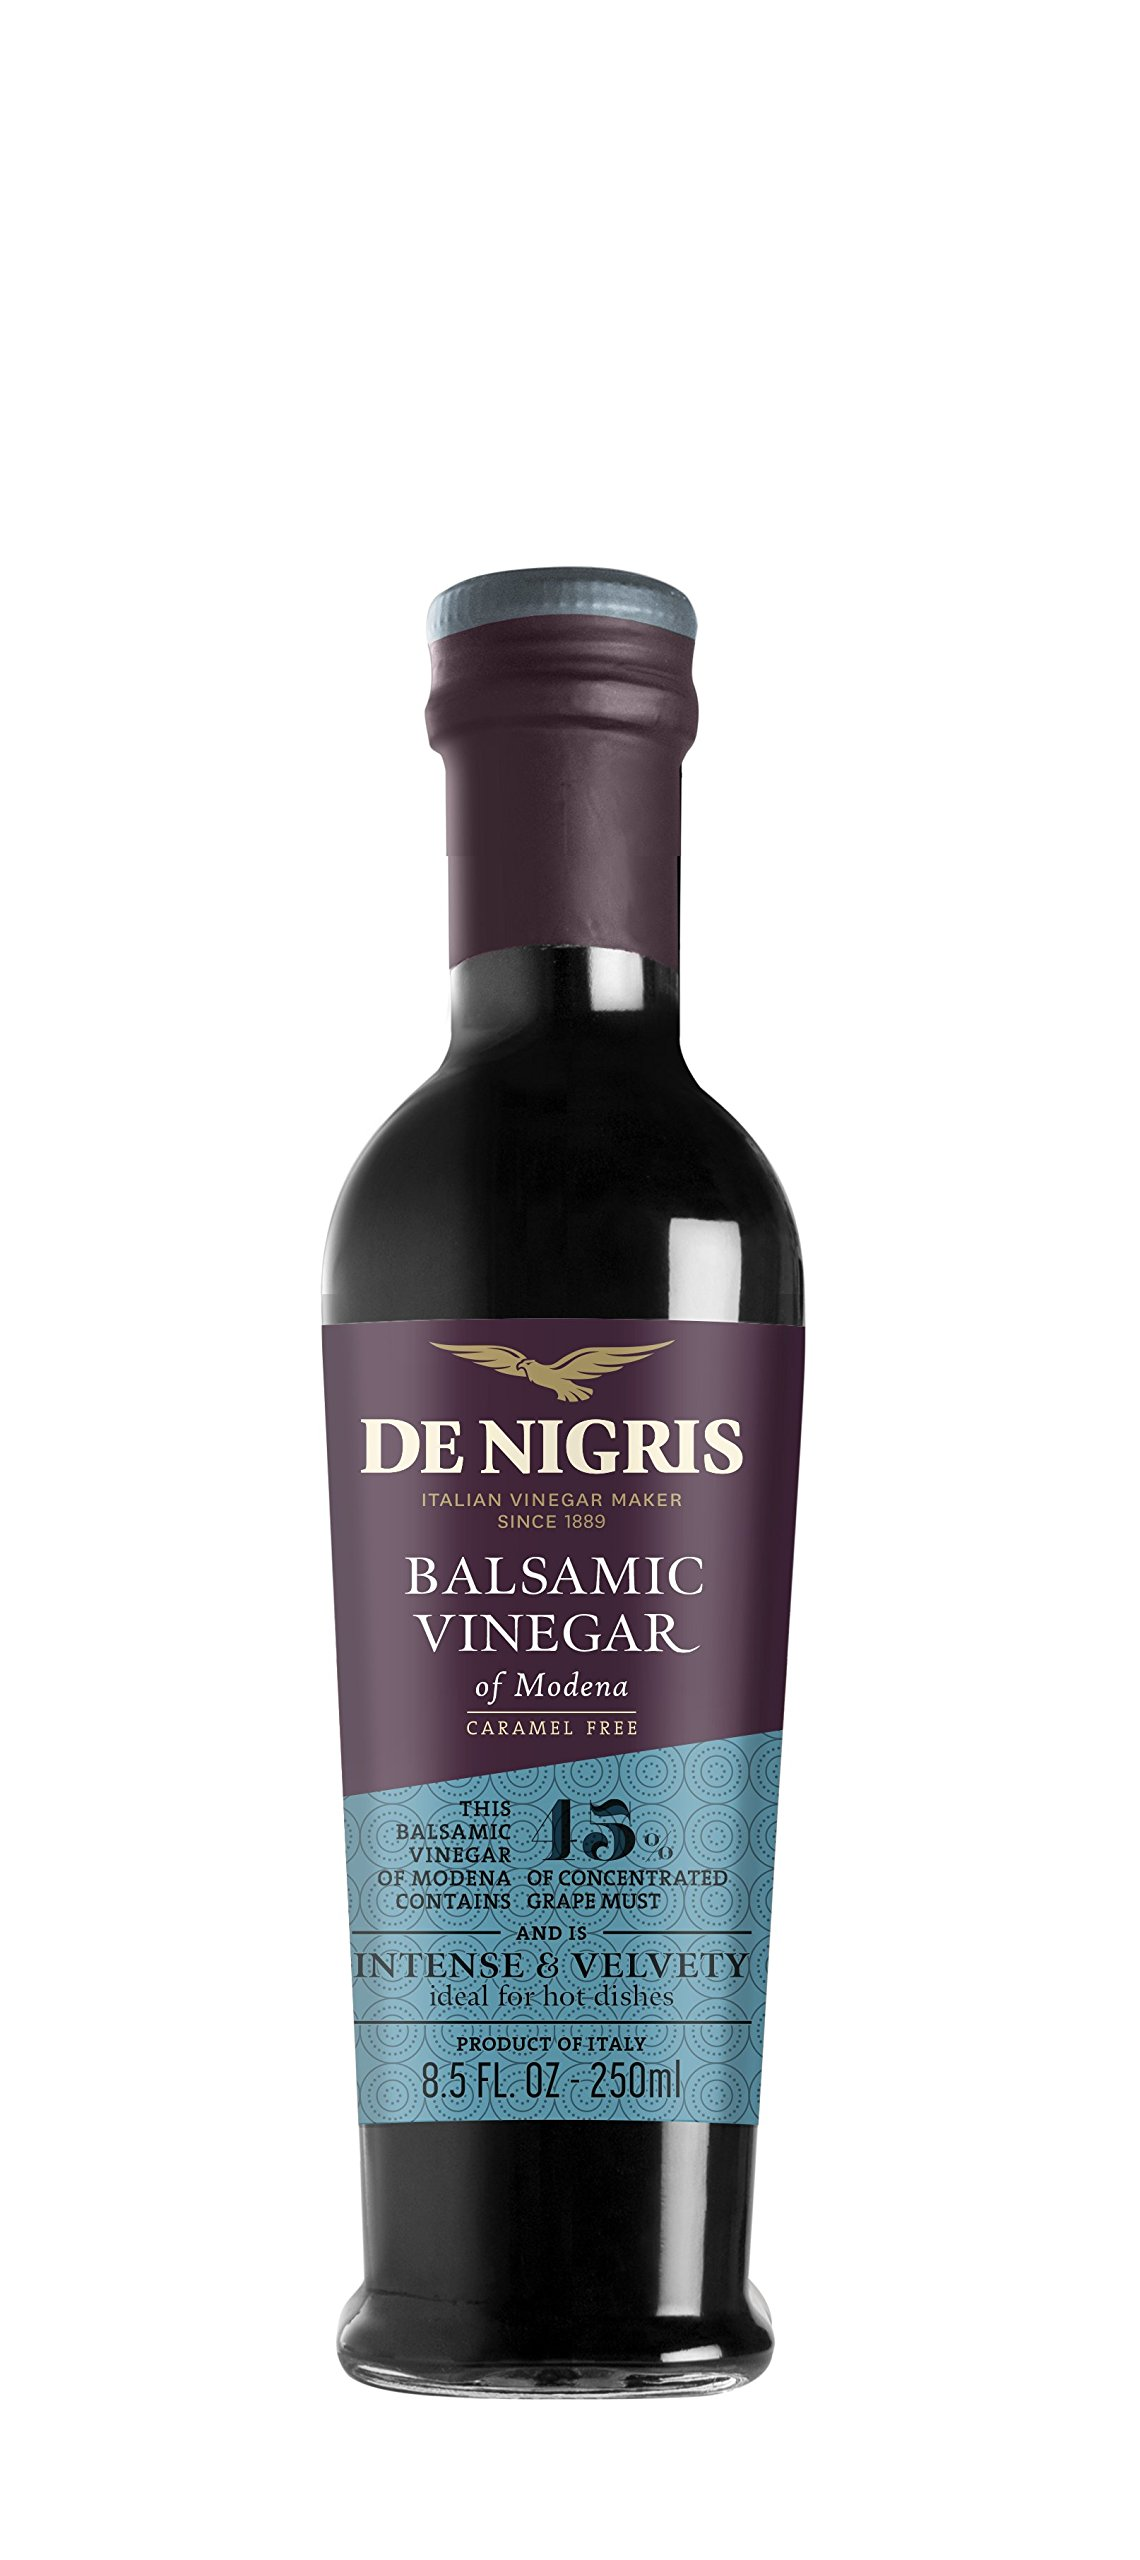 De nigris silver eagle balsamic vinegar of modena - 250ml 1 balsamic vinegar of modena containing 45% grape must intense and velvety ideal for hot dishes, grilled meats, and seafood